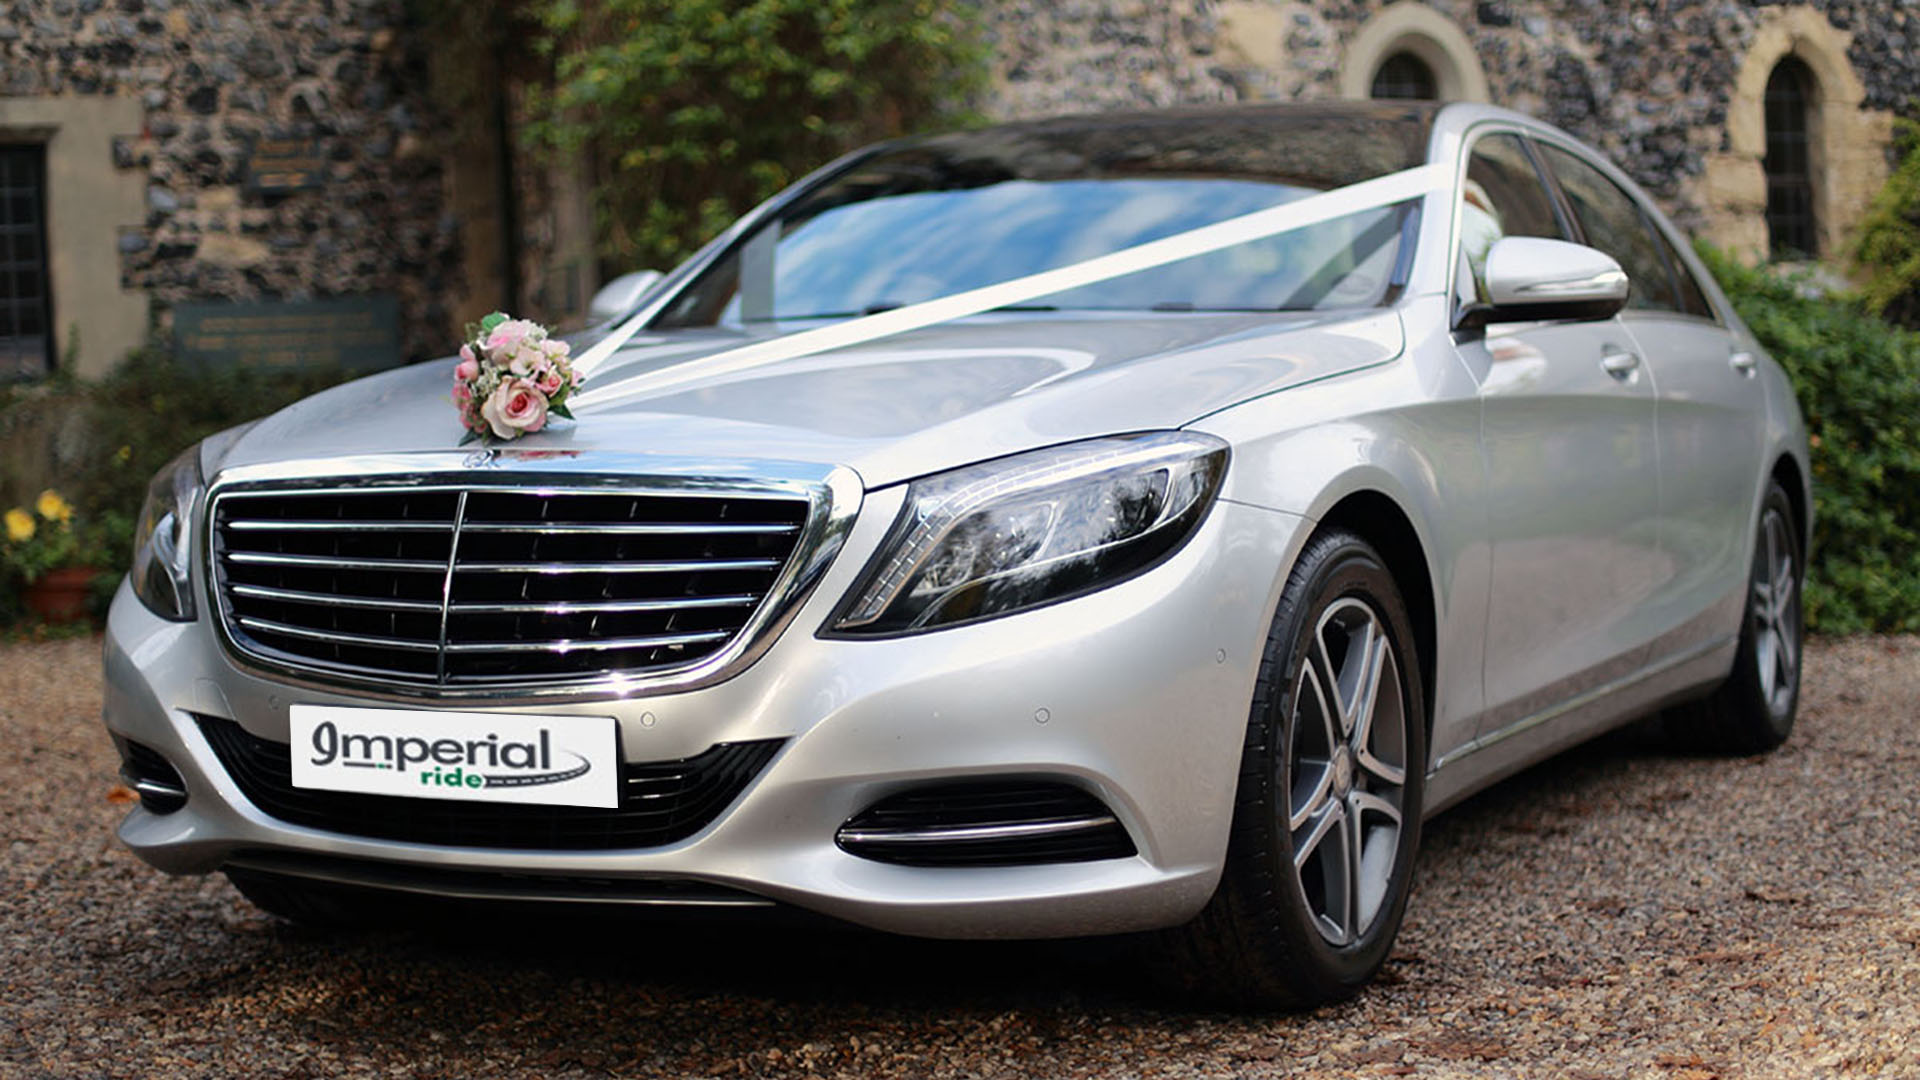 s-class-wedding-hire-in-hounslow